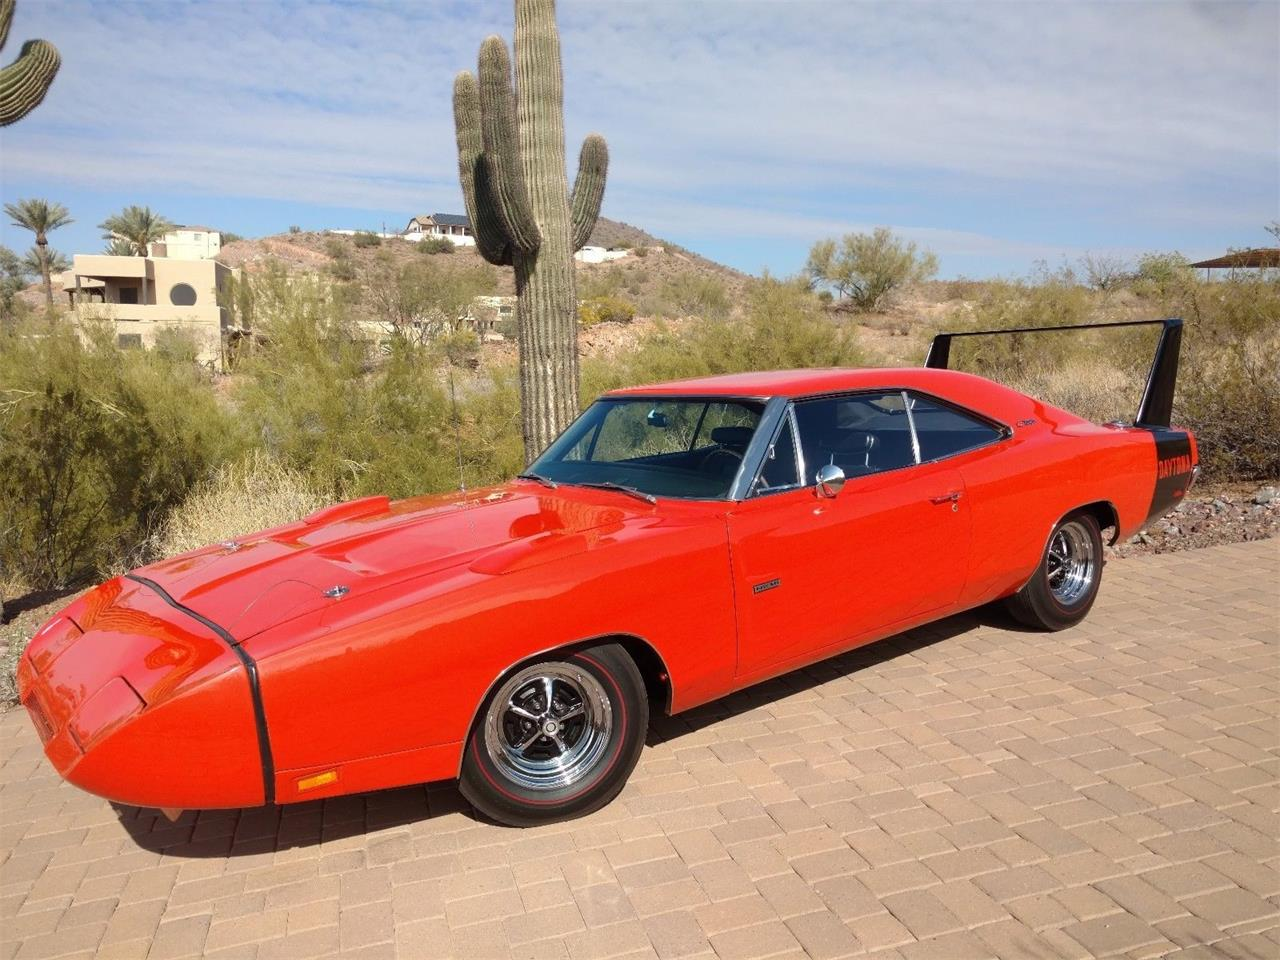 Large Picture of 1969 Dodge Daytona located in Prior Lake Minnesota - $649,000.00 - N7ND